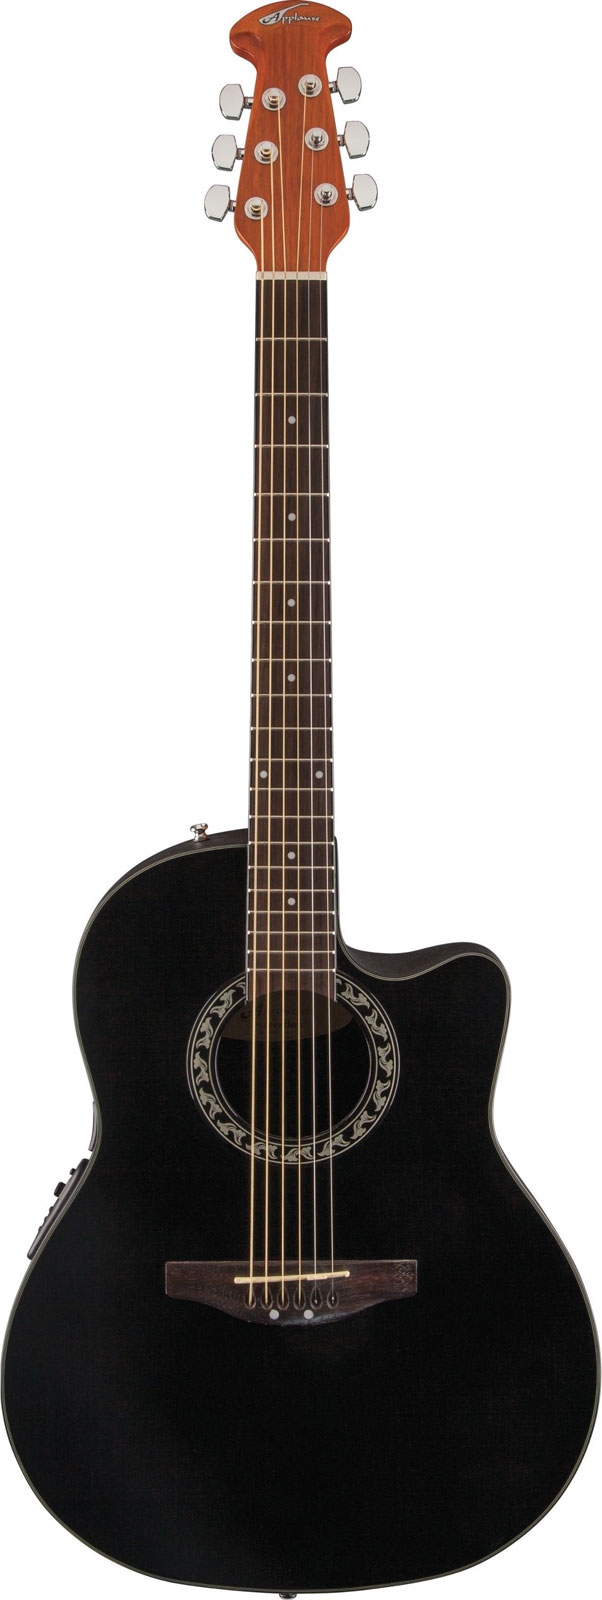 OVATION APPLAUSE BALLADEER AB245 BLACK